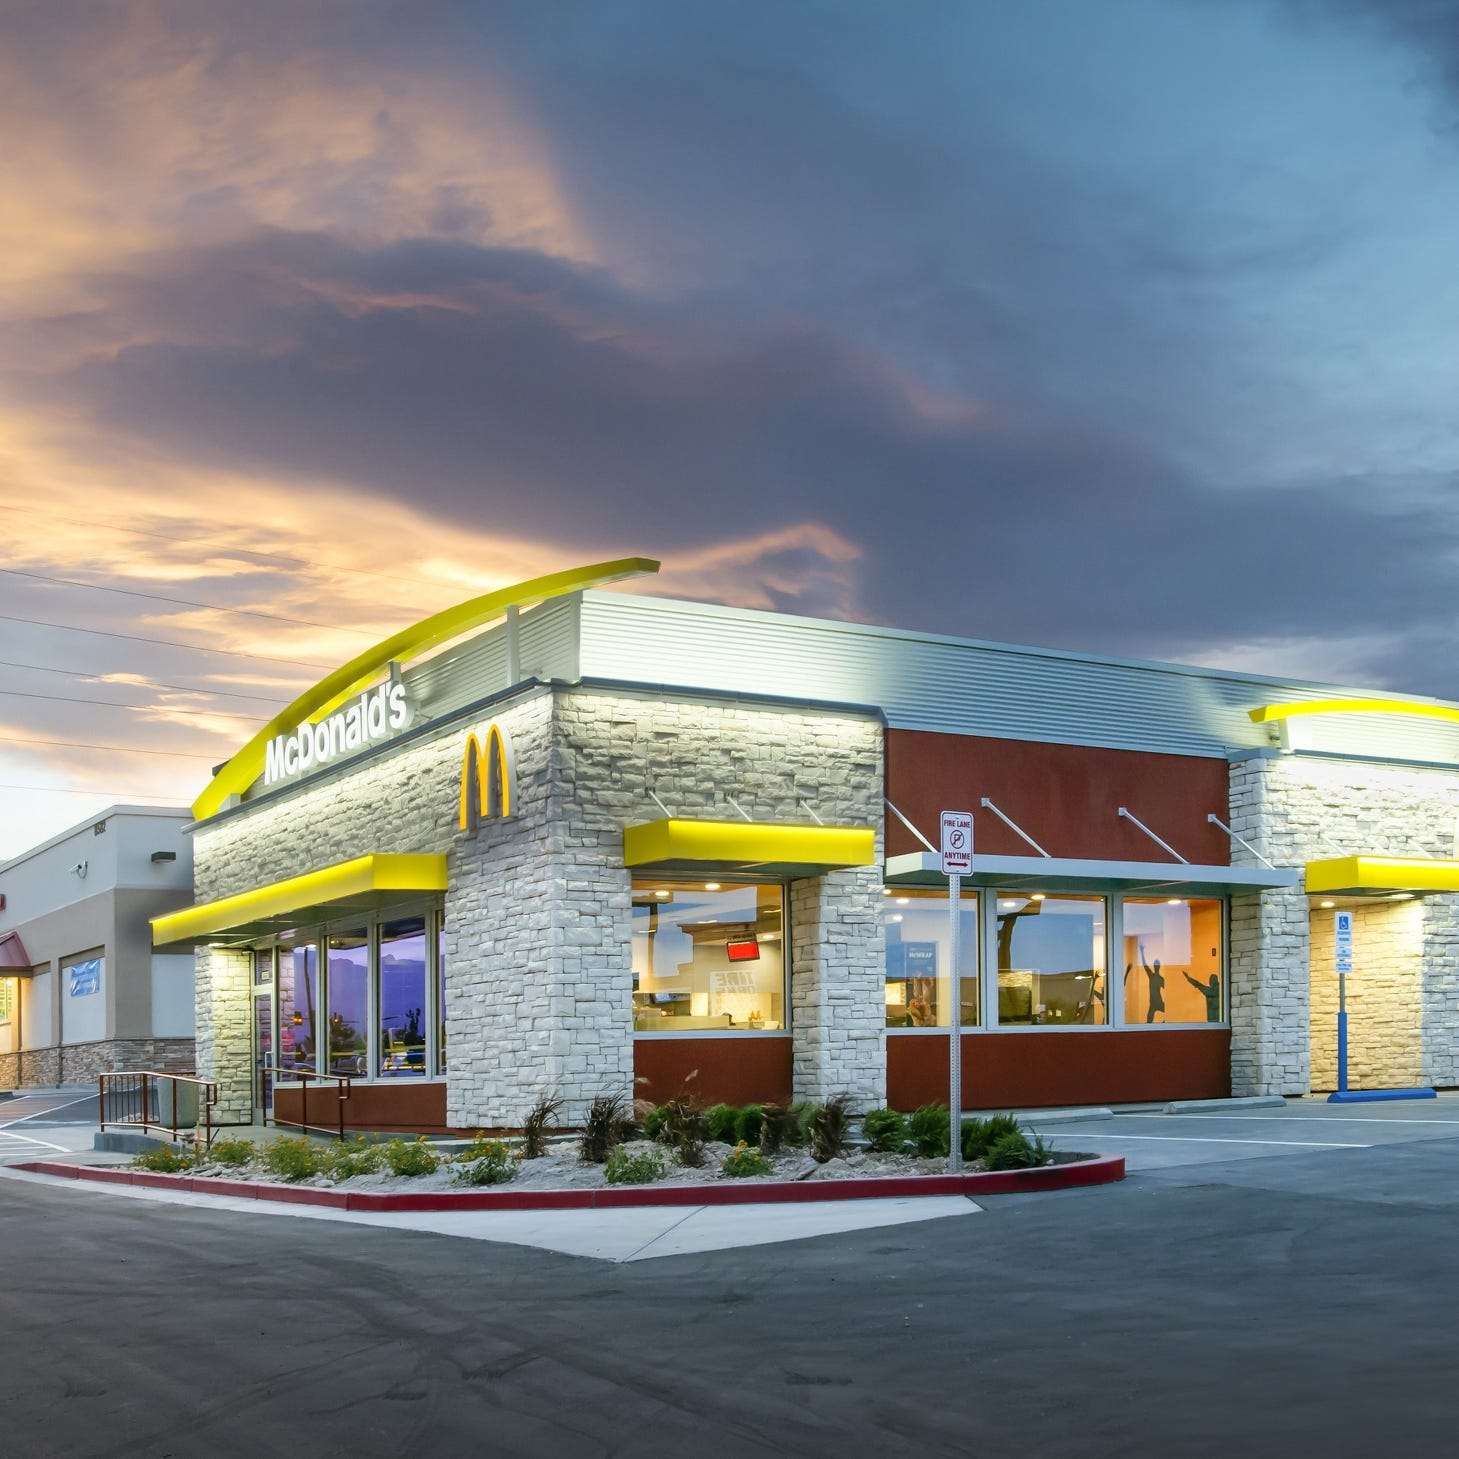 More kiosks on the way as McDonald's invests $53 million to freshen up Nevada restaurants